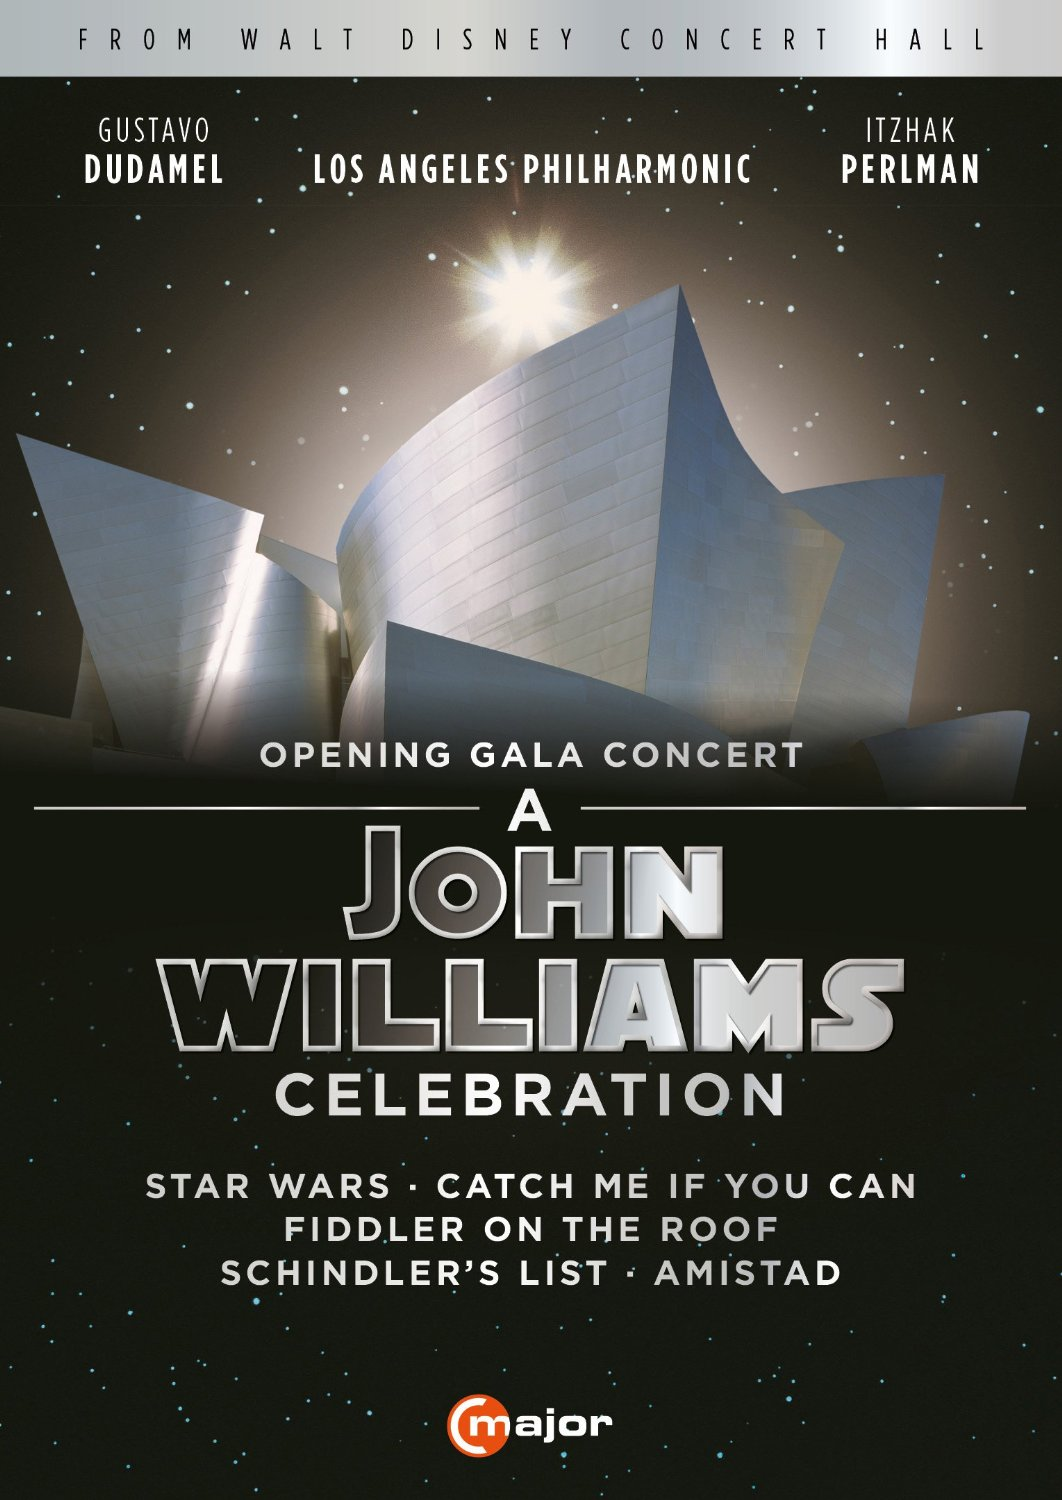 A John Williams Celebration [Itzhak Perlman; Los Angeles Philharmonic Orchestra] [2015] (Dvd) (DVD)